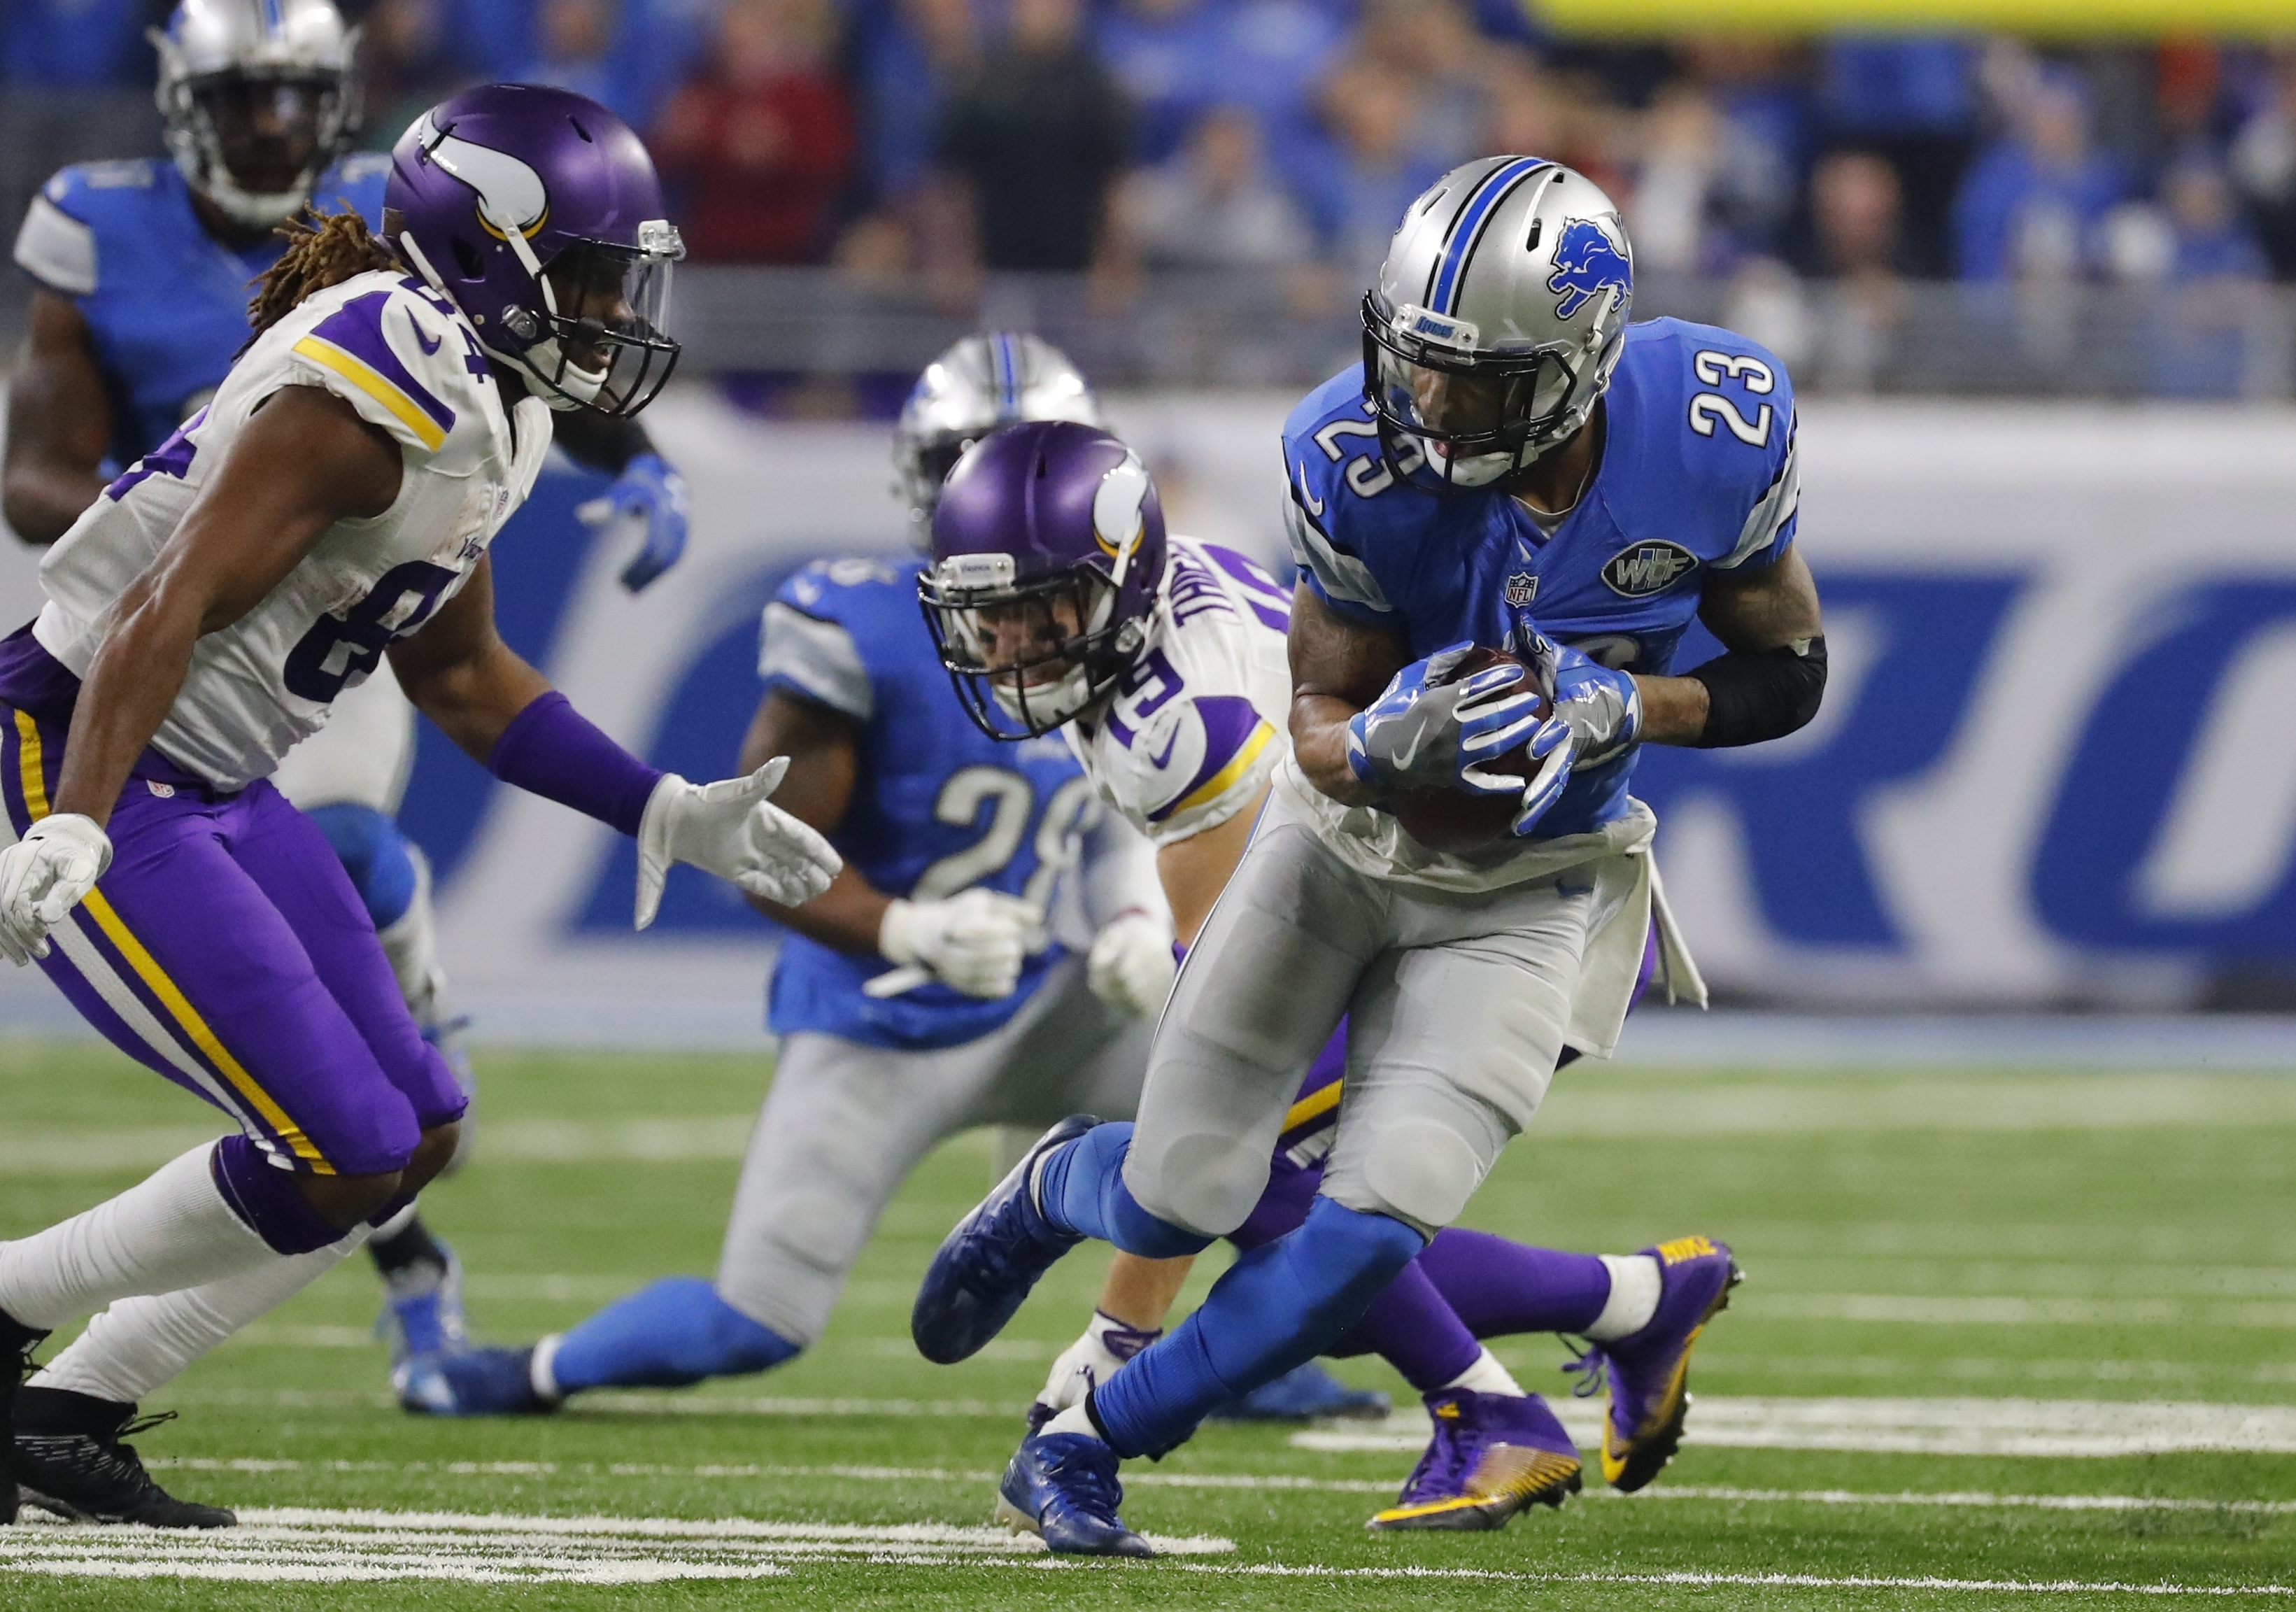 Detroit Lions cornerback Darius Slay (23) intercepts a pass intended for Minnesota Vikings wide receiver Adam Thielen (19) during the second half of an NFL football game, Thursday, Nov. 24, 2016 in Detroit. (AP Photo/Rick Osentoski)